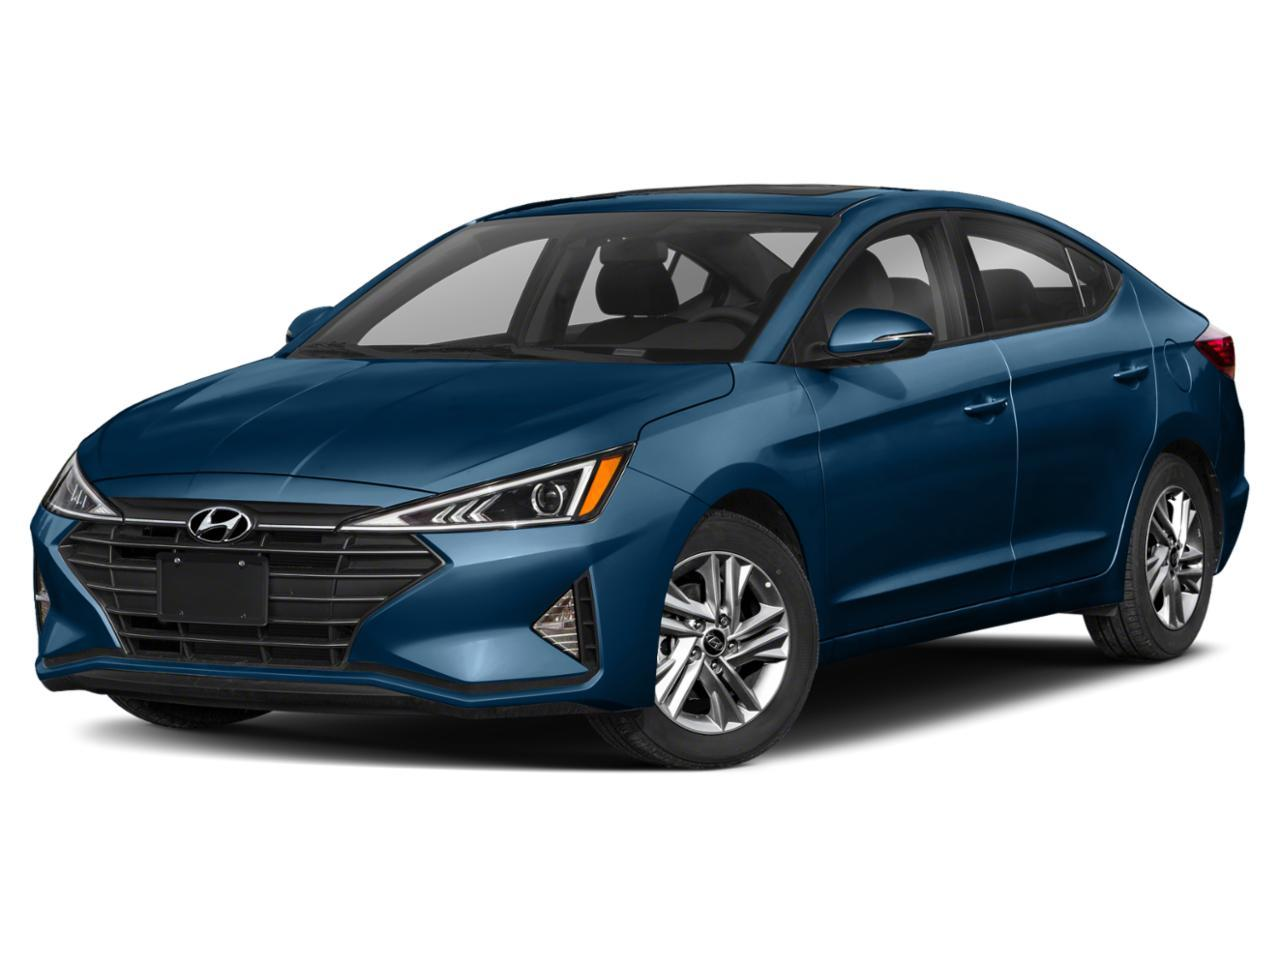 2020 Hyundai Elantra Vehicle Photo in Kansas City, MO 64114